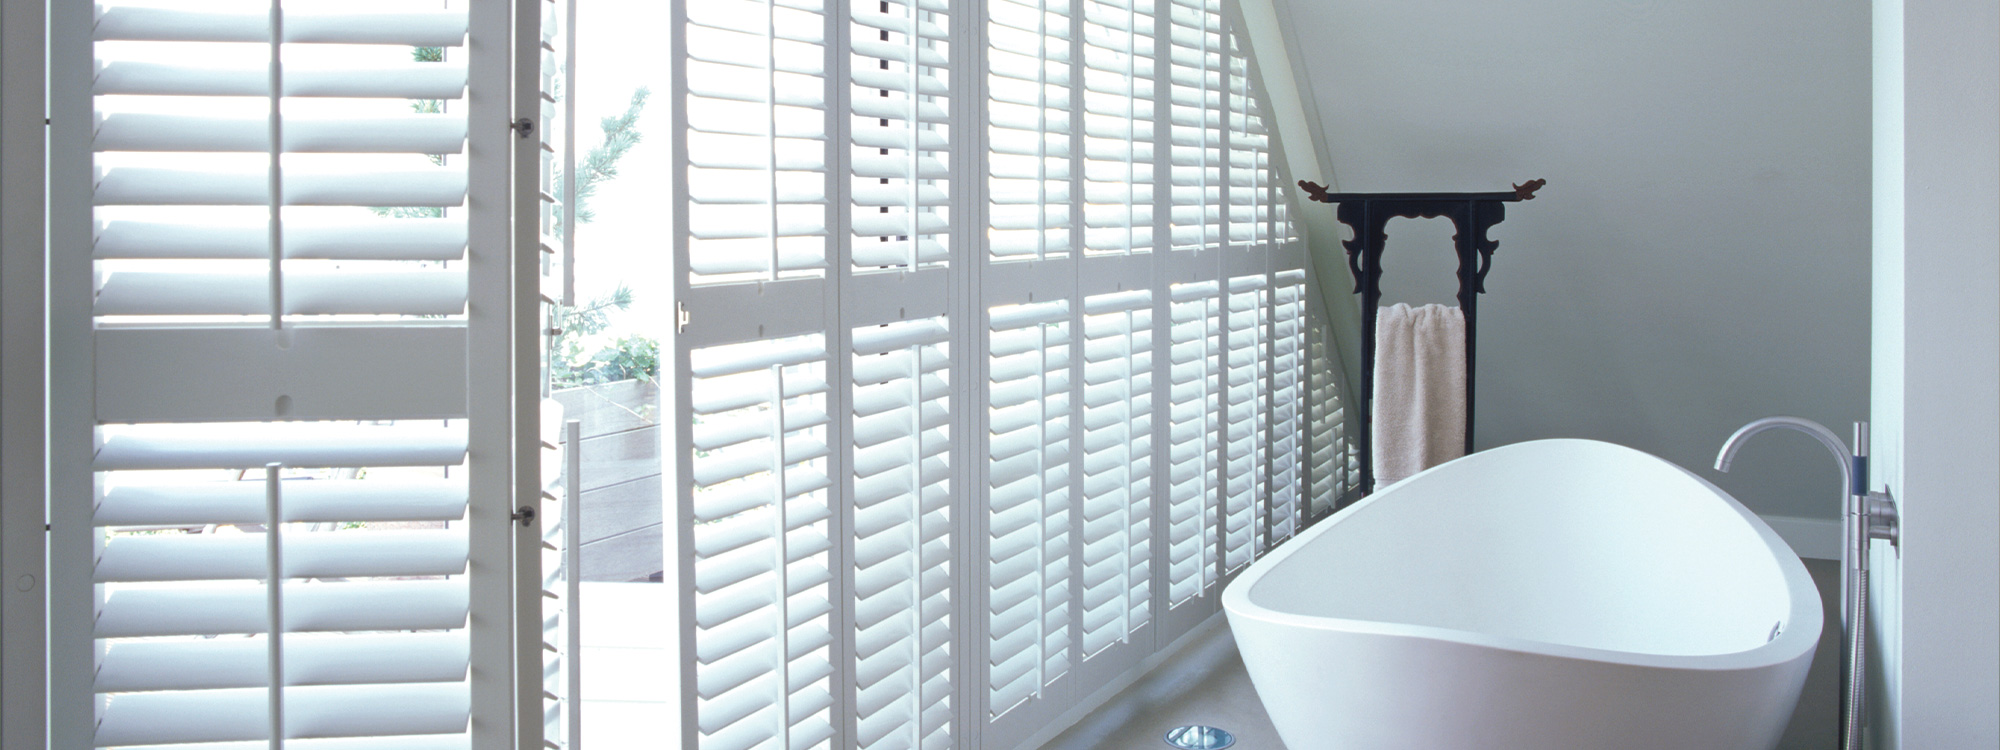 Woodbury-shutters-bathroom-bathtub